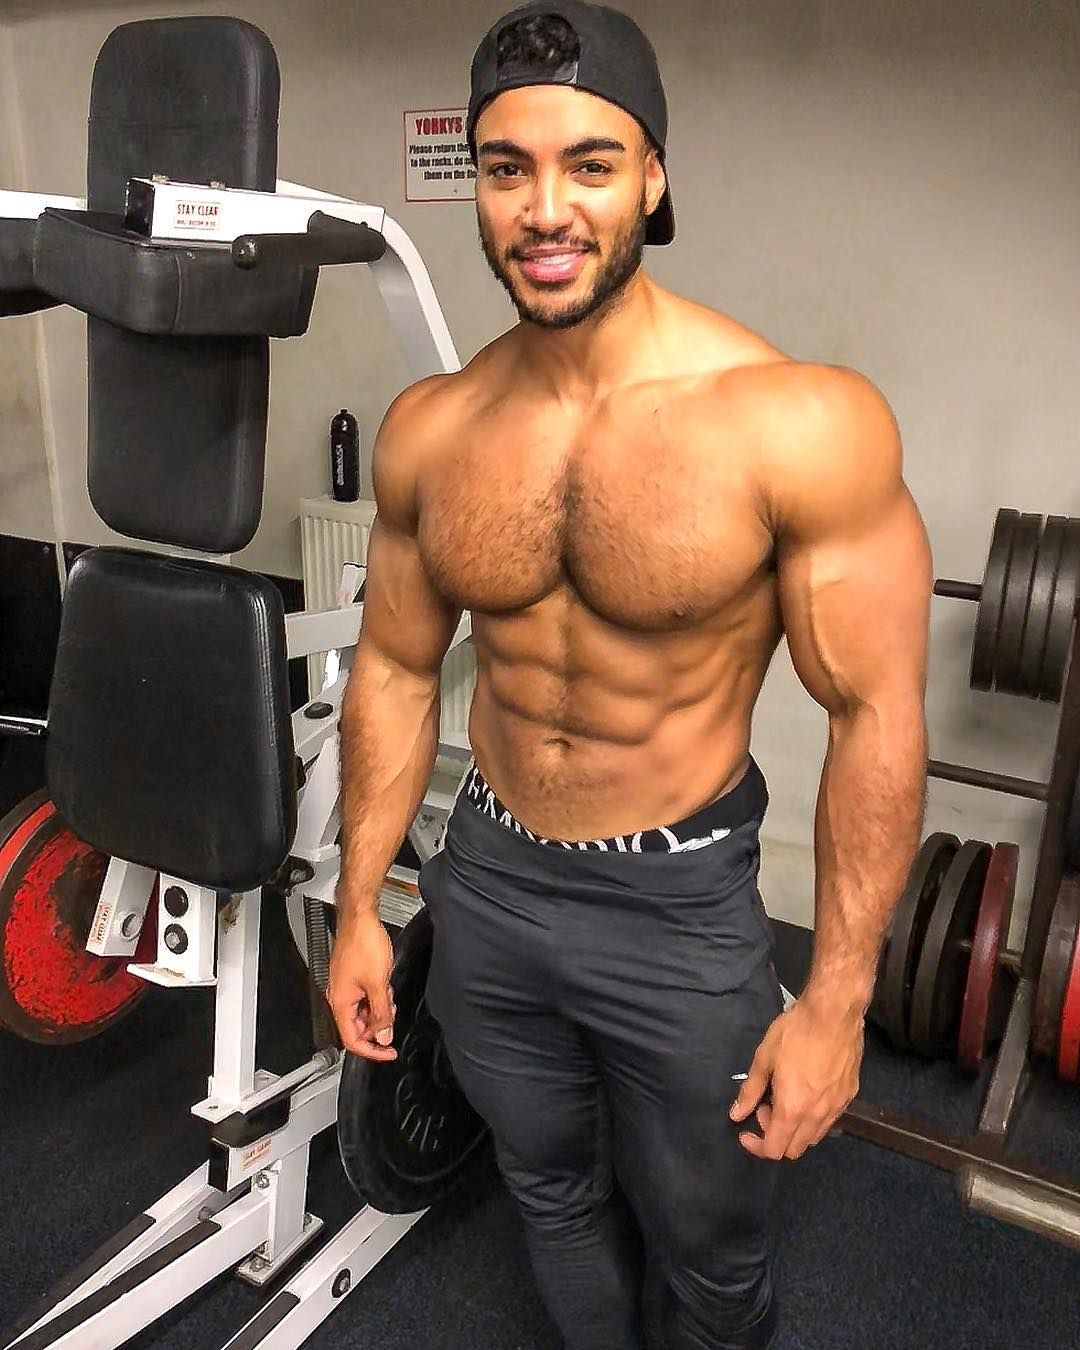 Hot Guys Shirtless At The Gym Pictures Popsugar Fitness